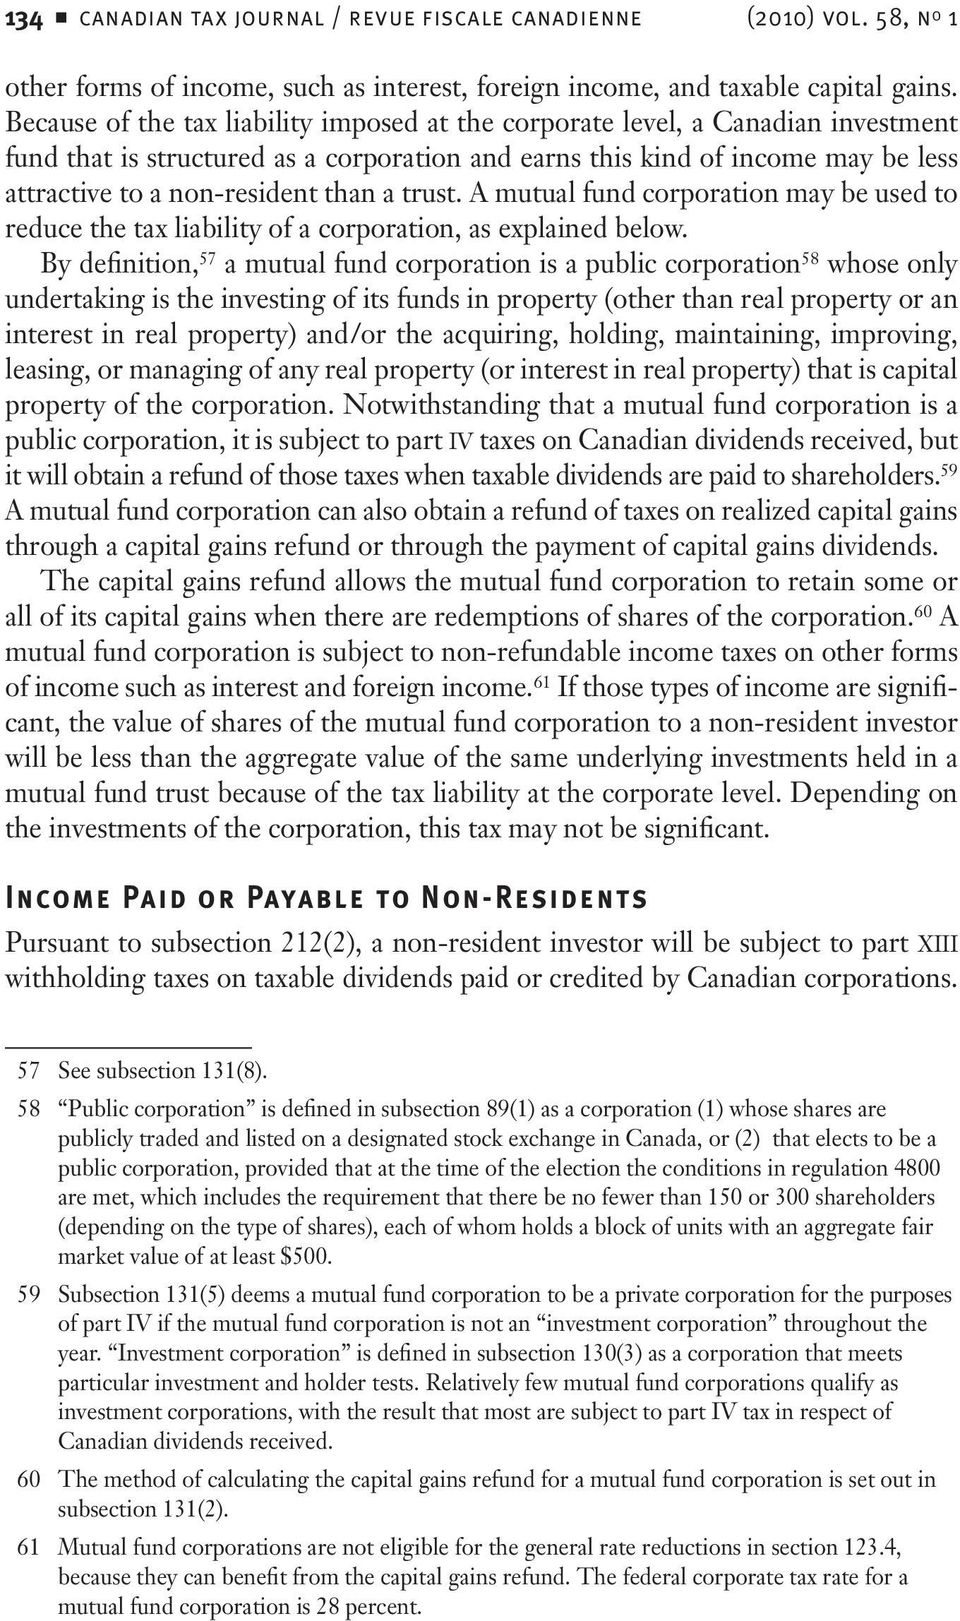 taxation of non-resident investors in canadian investment funds - pdf